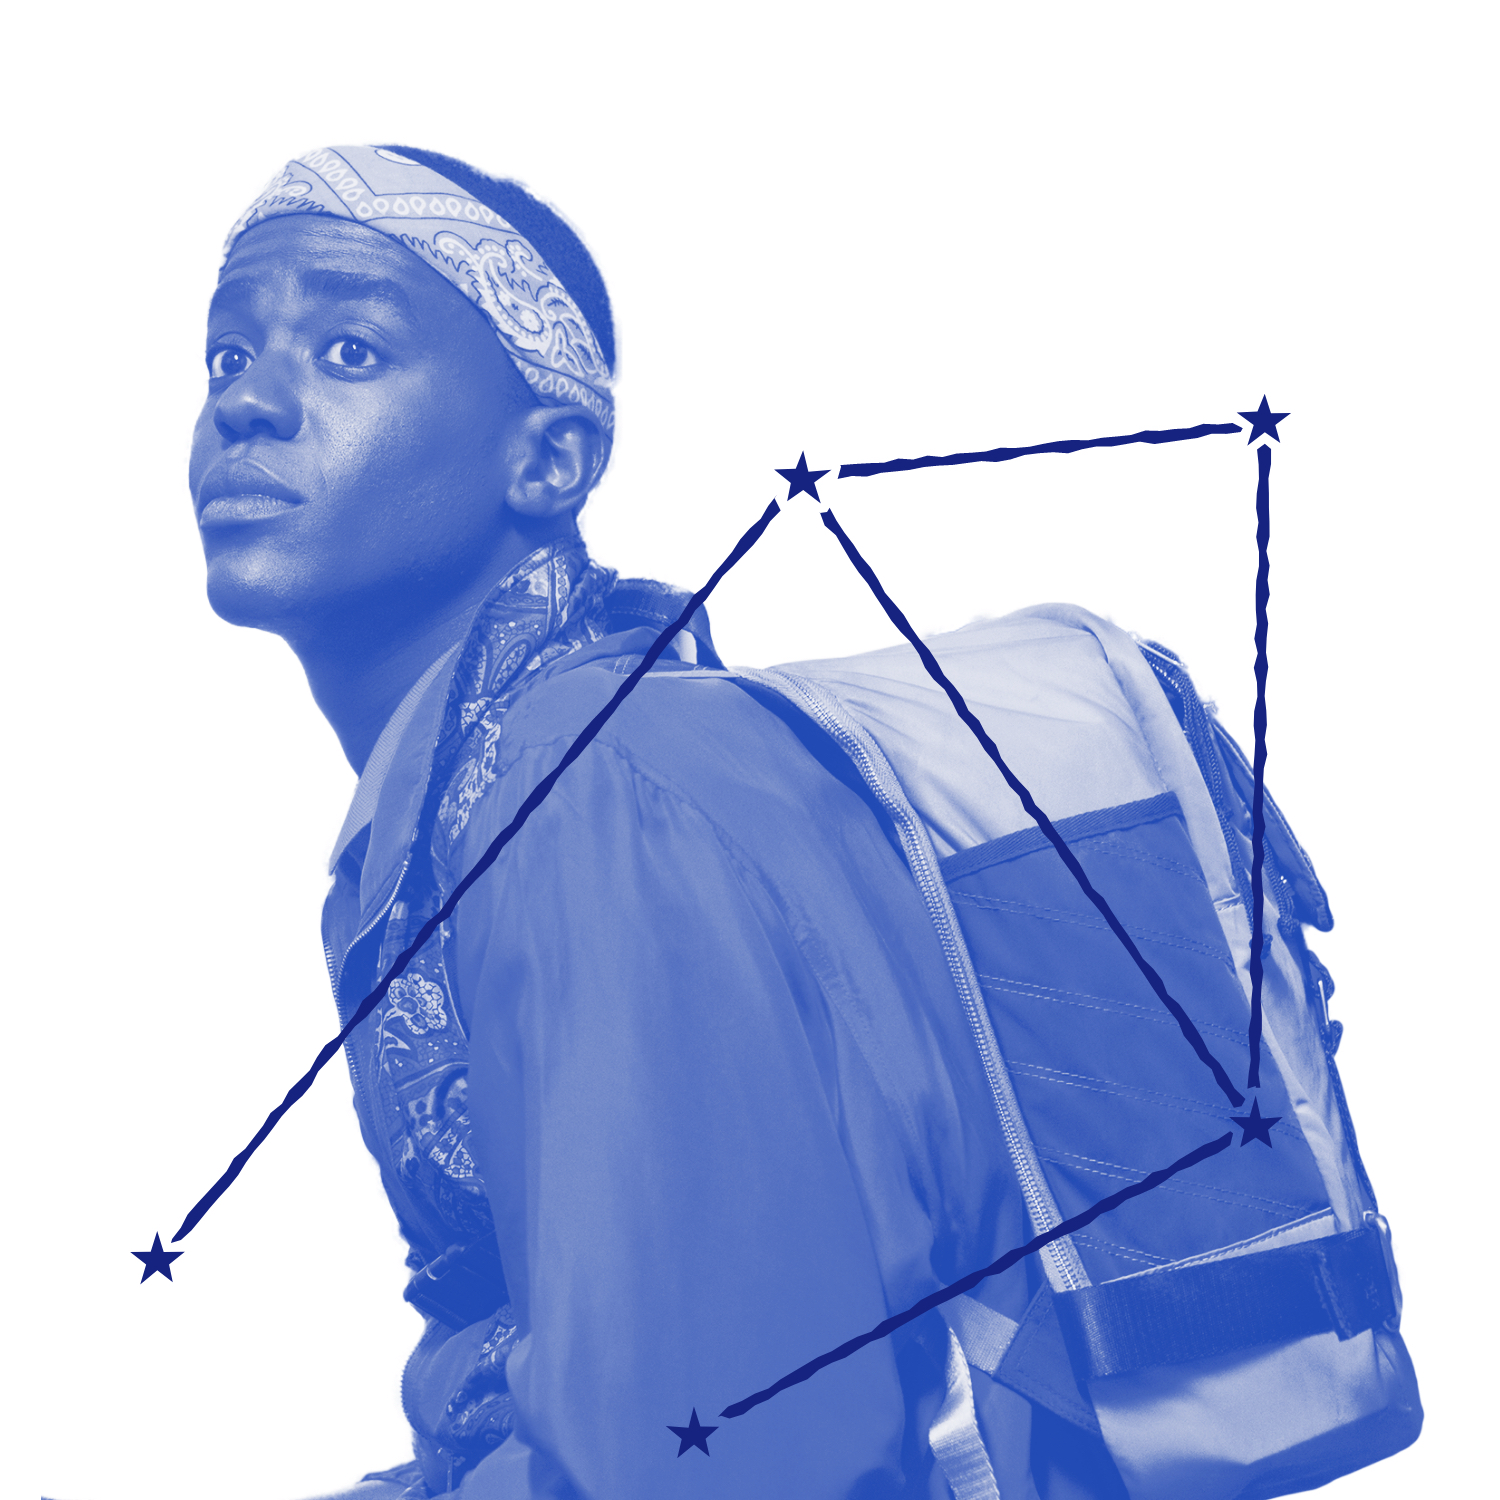 Eric Effiong (played by Ncuti Gatwa) is fabulous in a paisley bandana in this still from Sex Education. Only Eric can make a school backpack into a fashion statement. Over the image is an illustration of Eric's zodiac constellation.